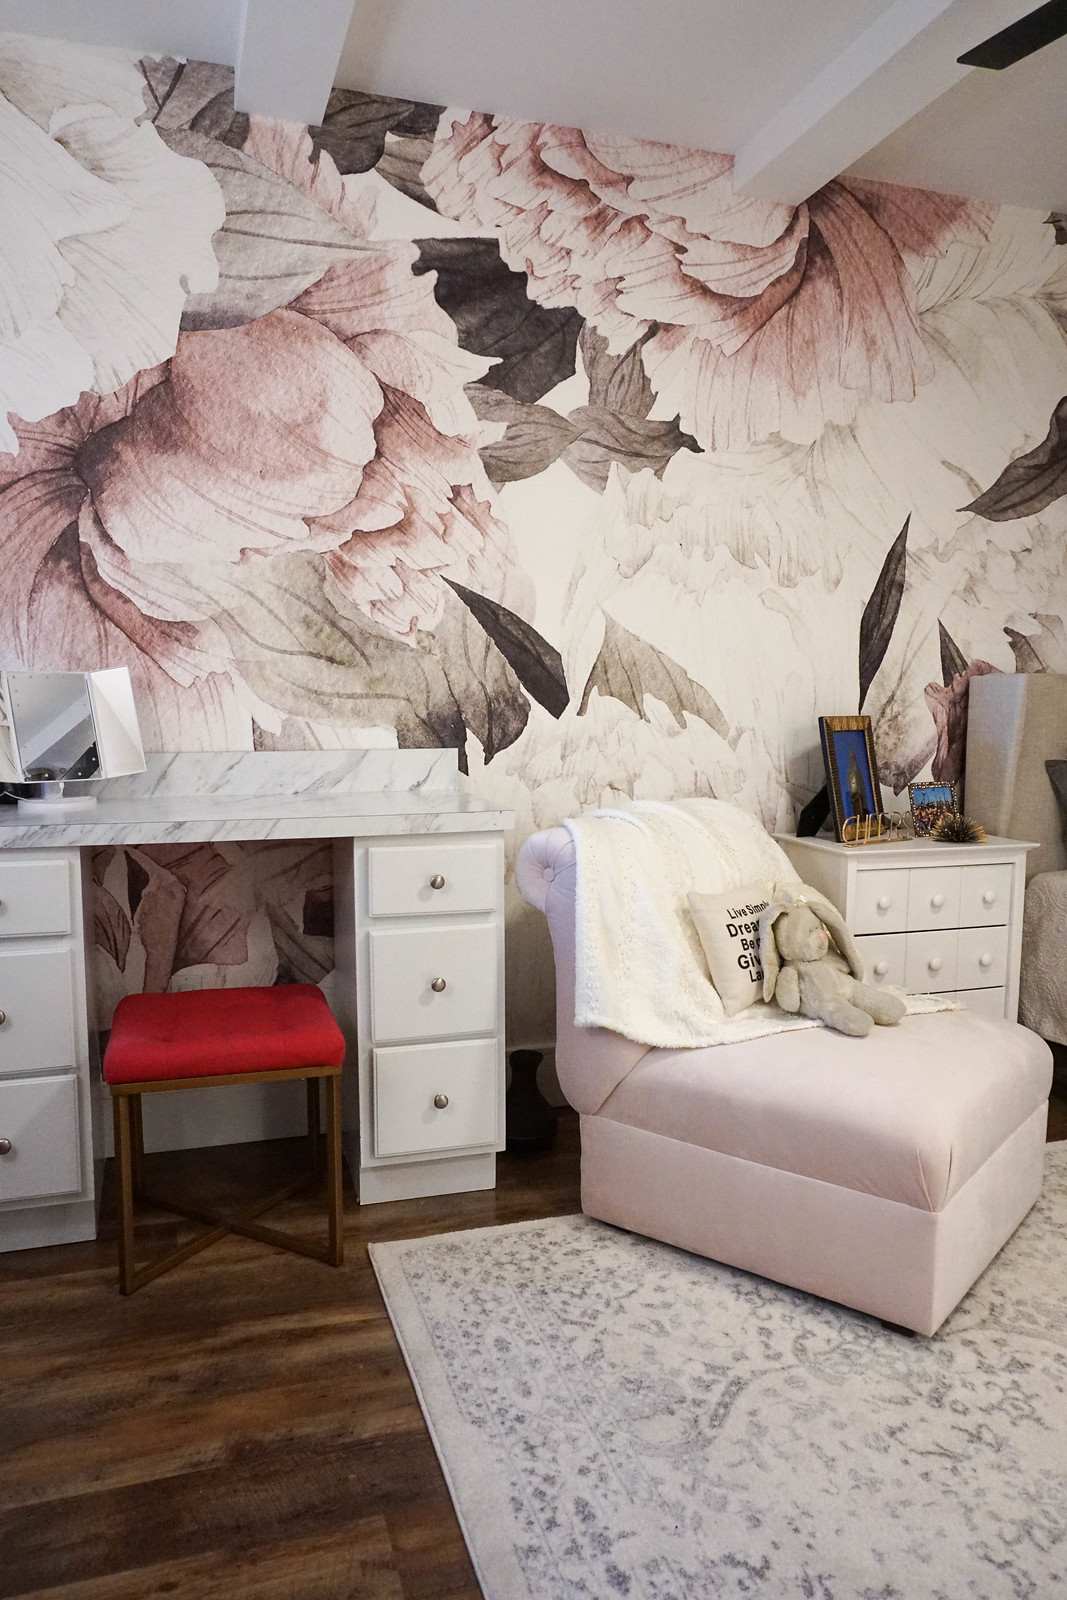 Anewall Blush Bouquet Wallpaper Mural Anthropologie White Vanity Pink Velvet Chair Girly Bedroom